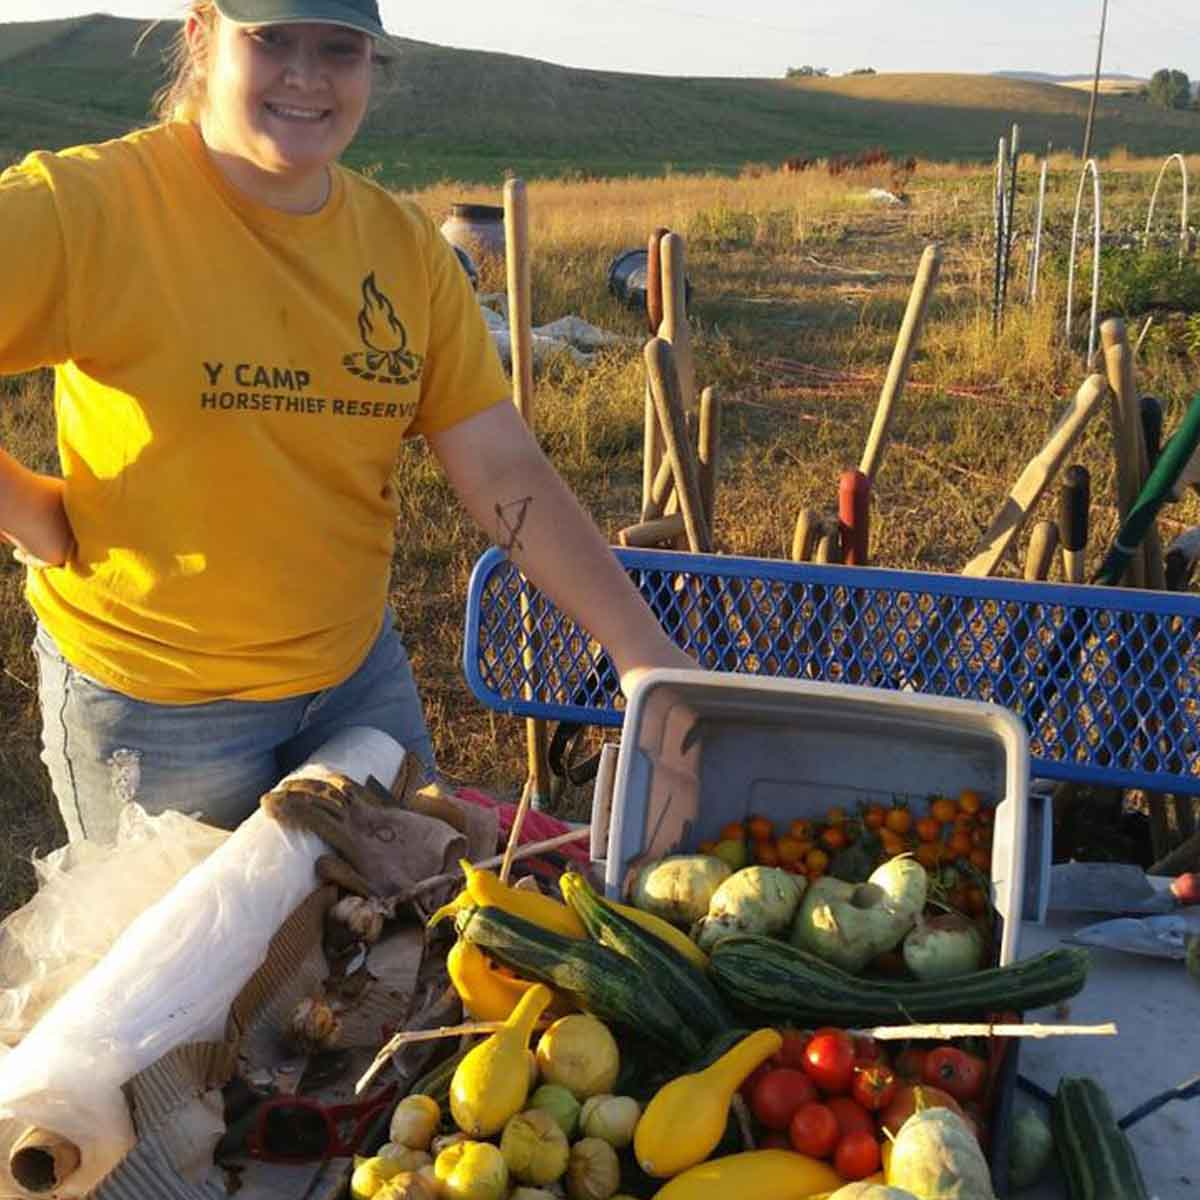 A cart full of harvested vegetables